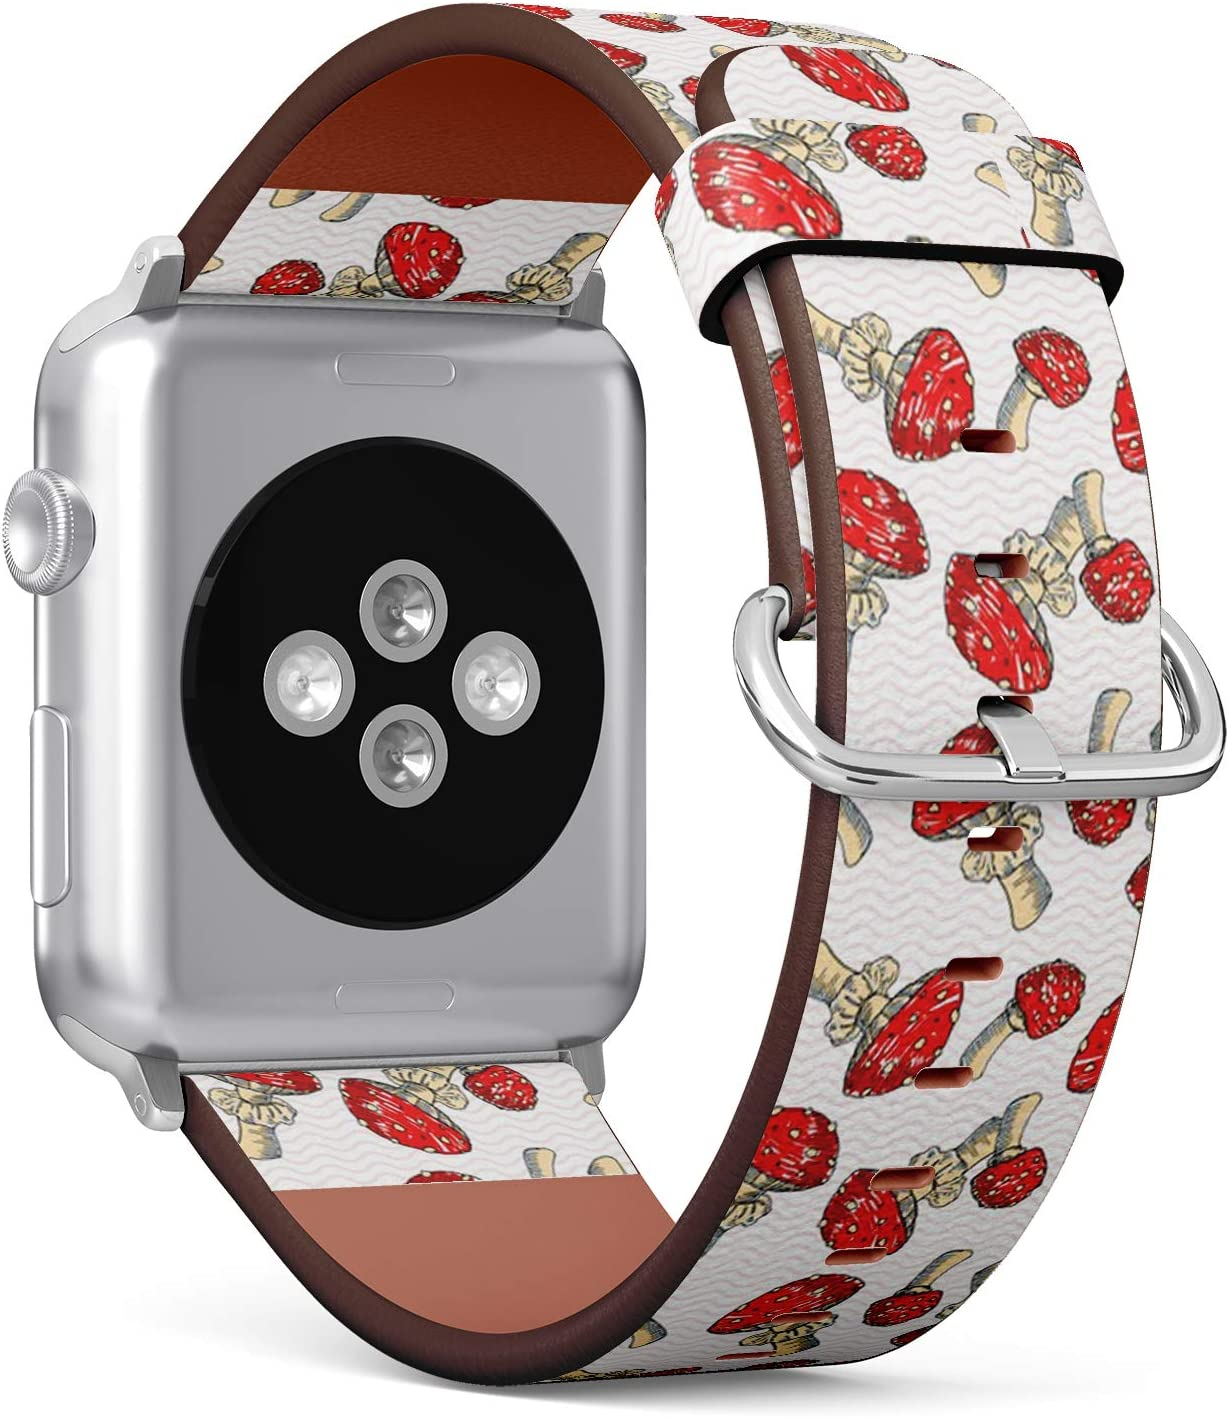 Compatible con Apple Watch de 42 mm y 44 mm – Correa de Reloj de Cuero con Cierre de Acero Inoxidable y adaptadores (Amanita Sketch Marker)